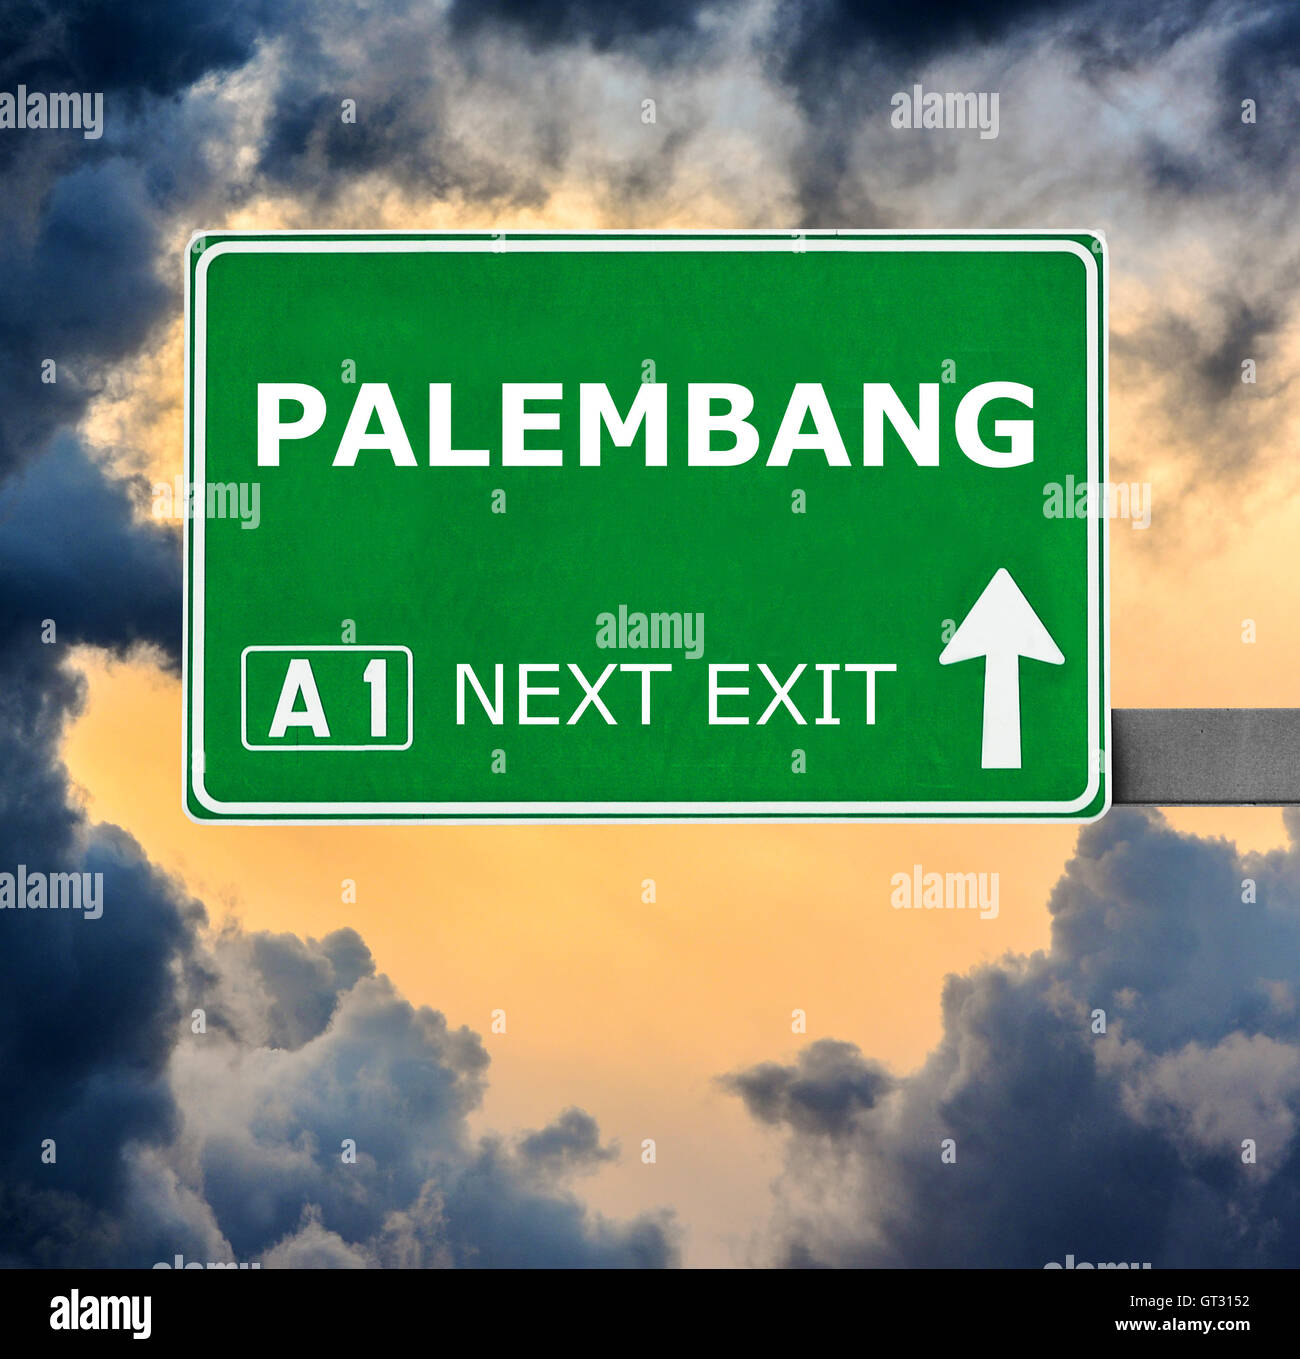 PALEMBANG road sign against clear blue sky - Stock Image